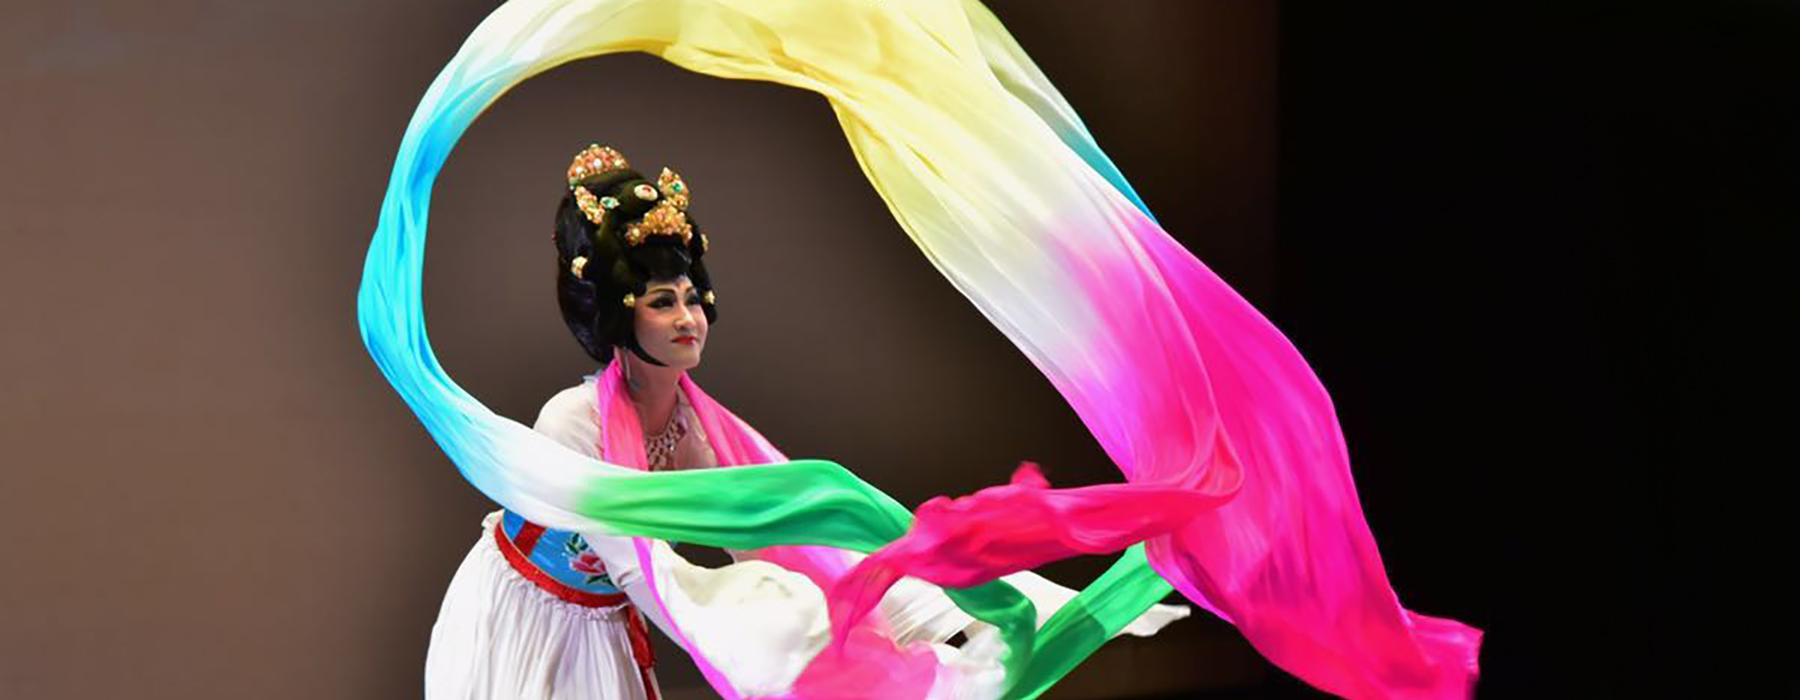 Lady performing a Chinese Ribbon Dance